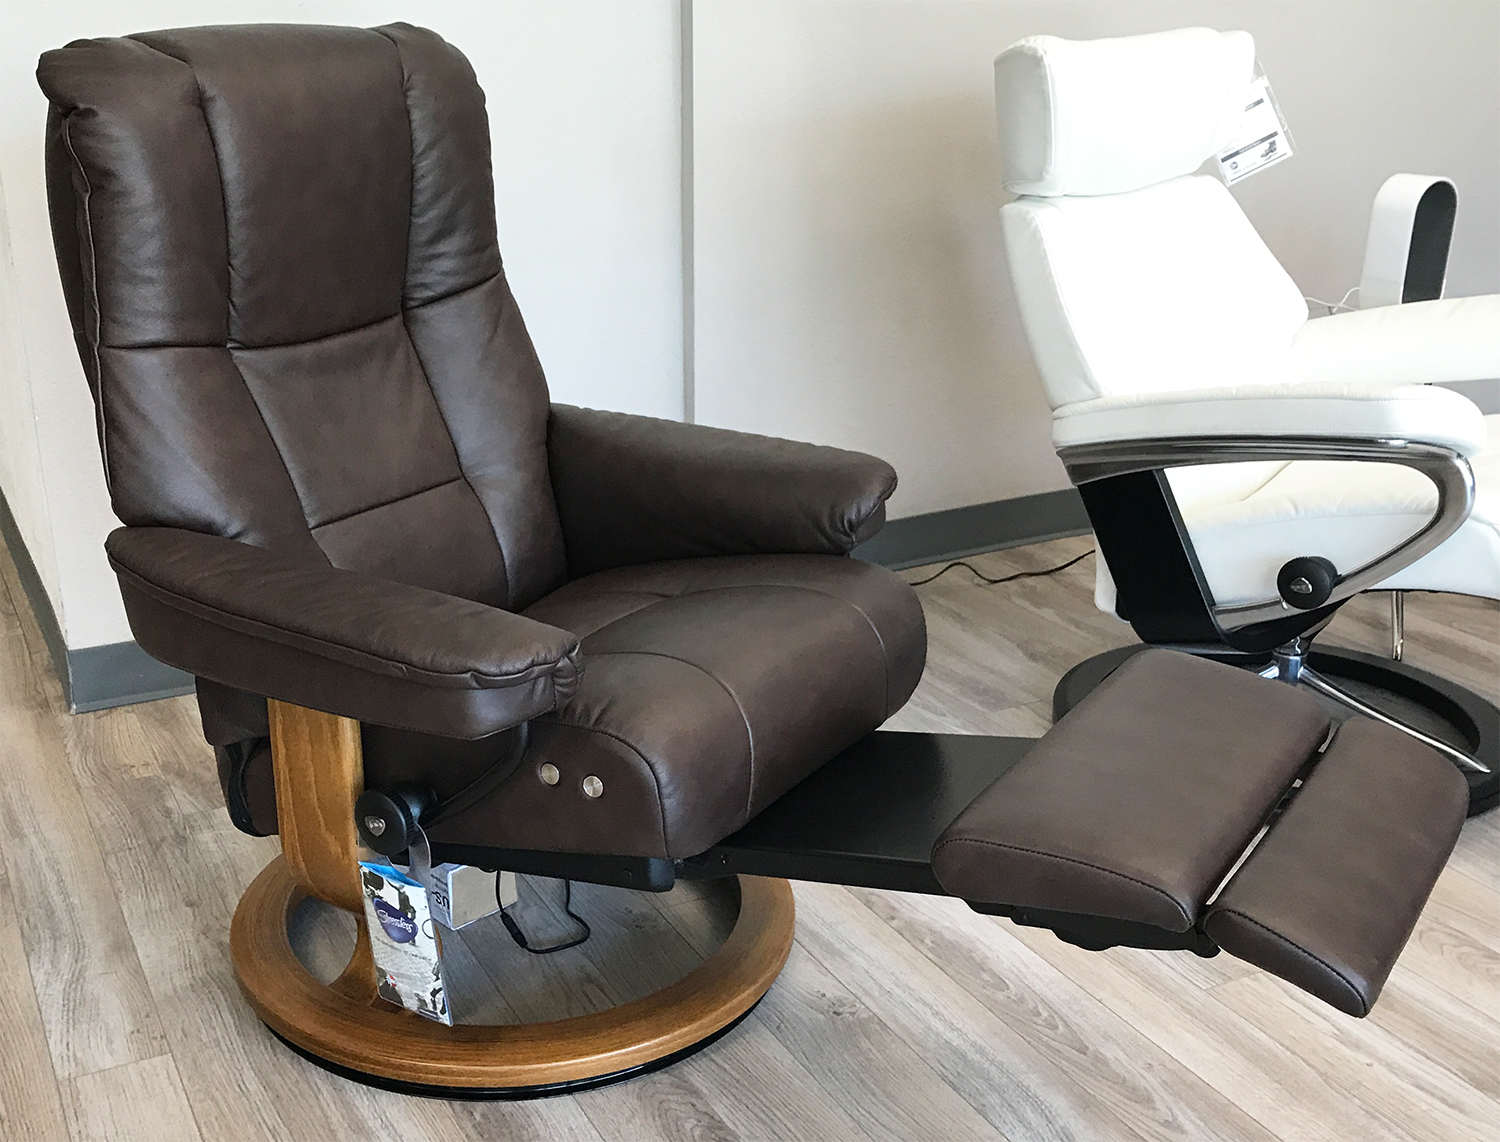 Stressless Mayfair Legcomfort Paloma Chocolate Leather